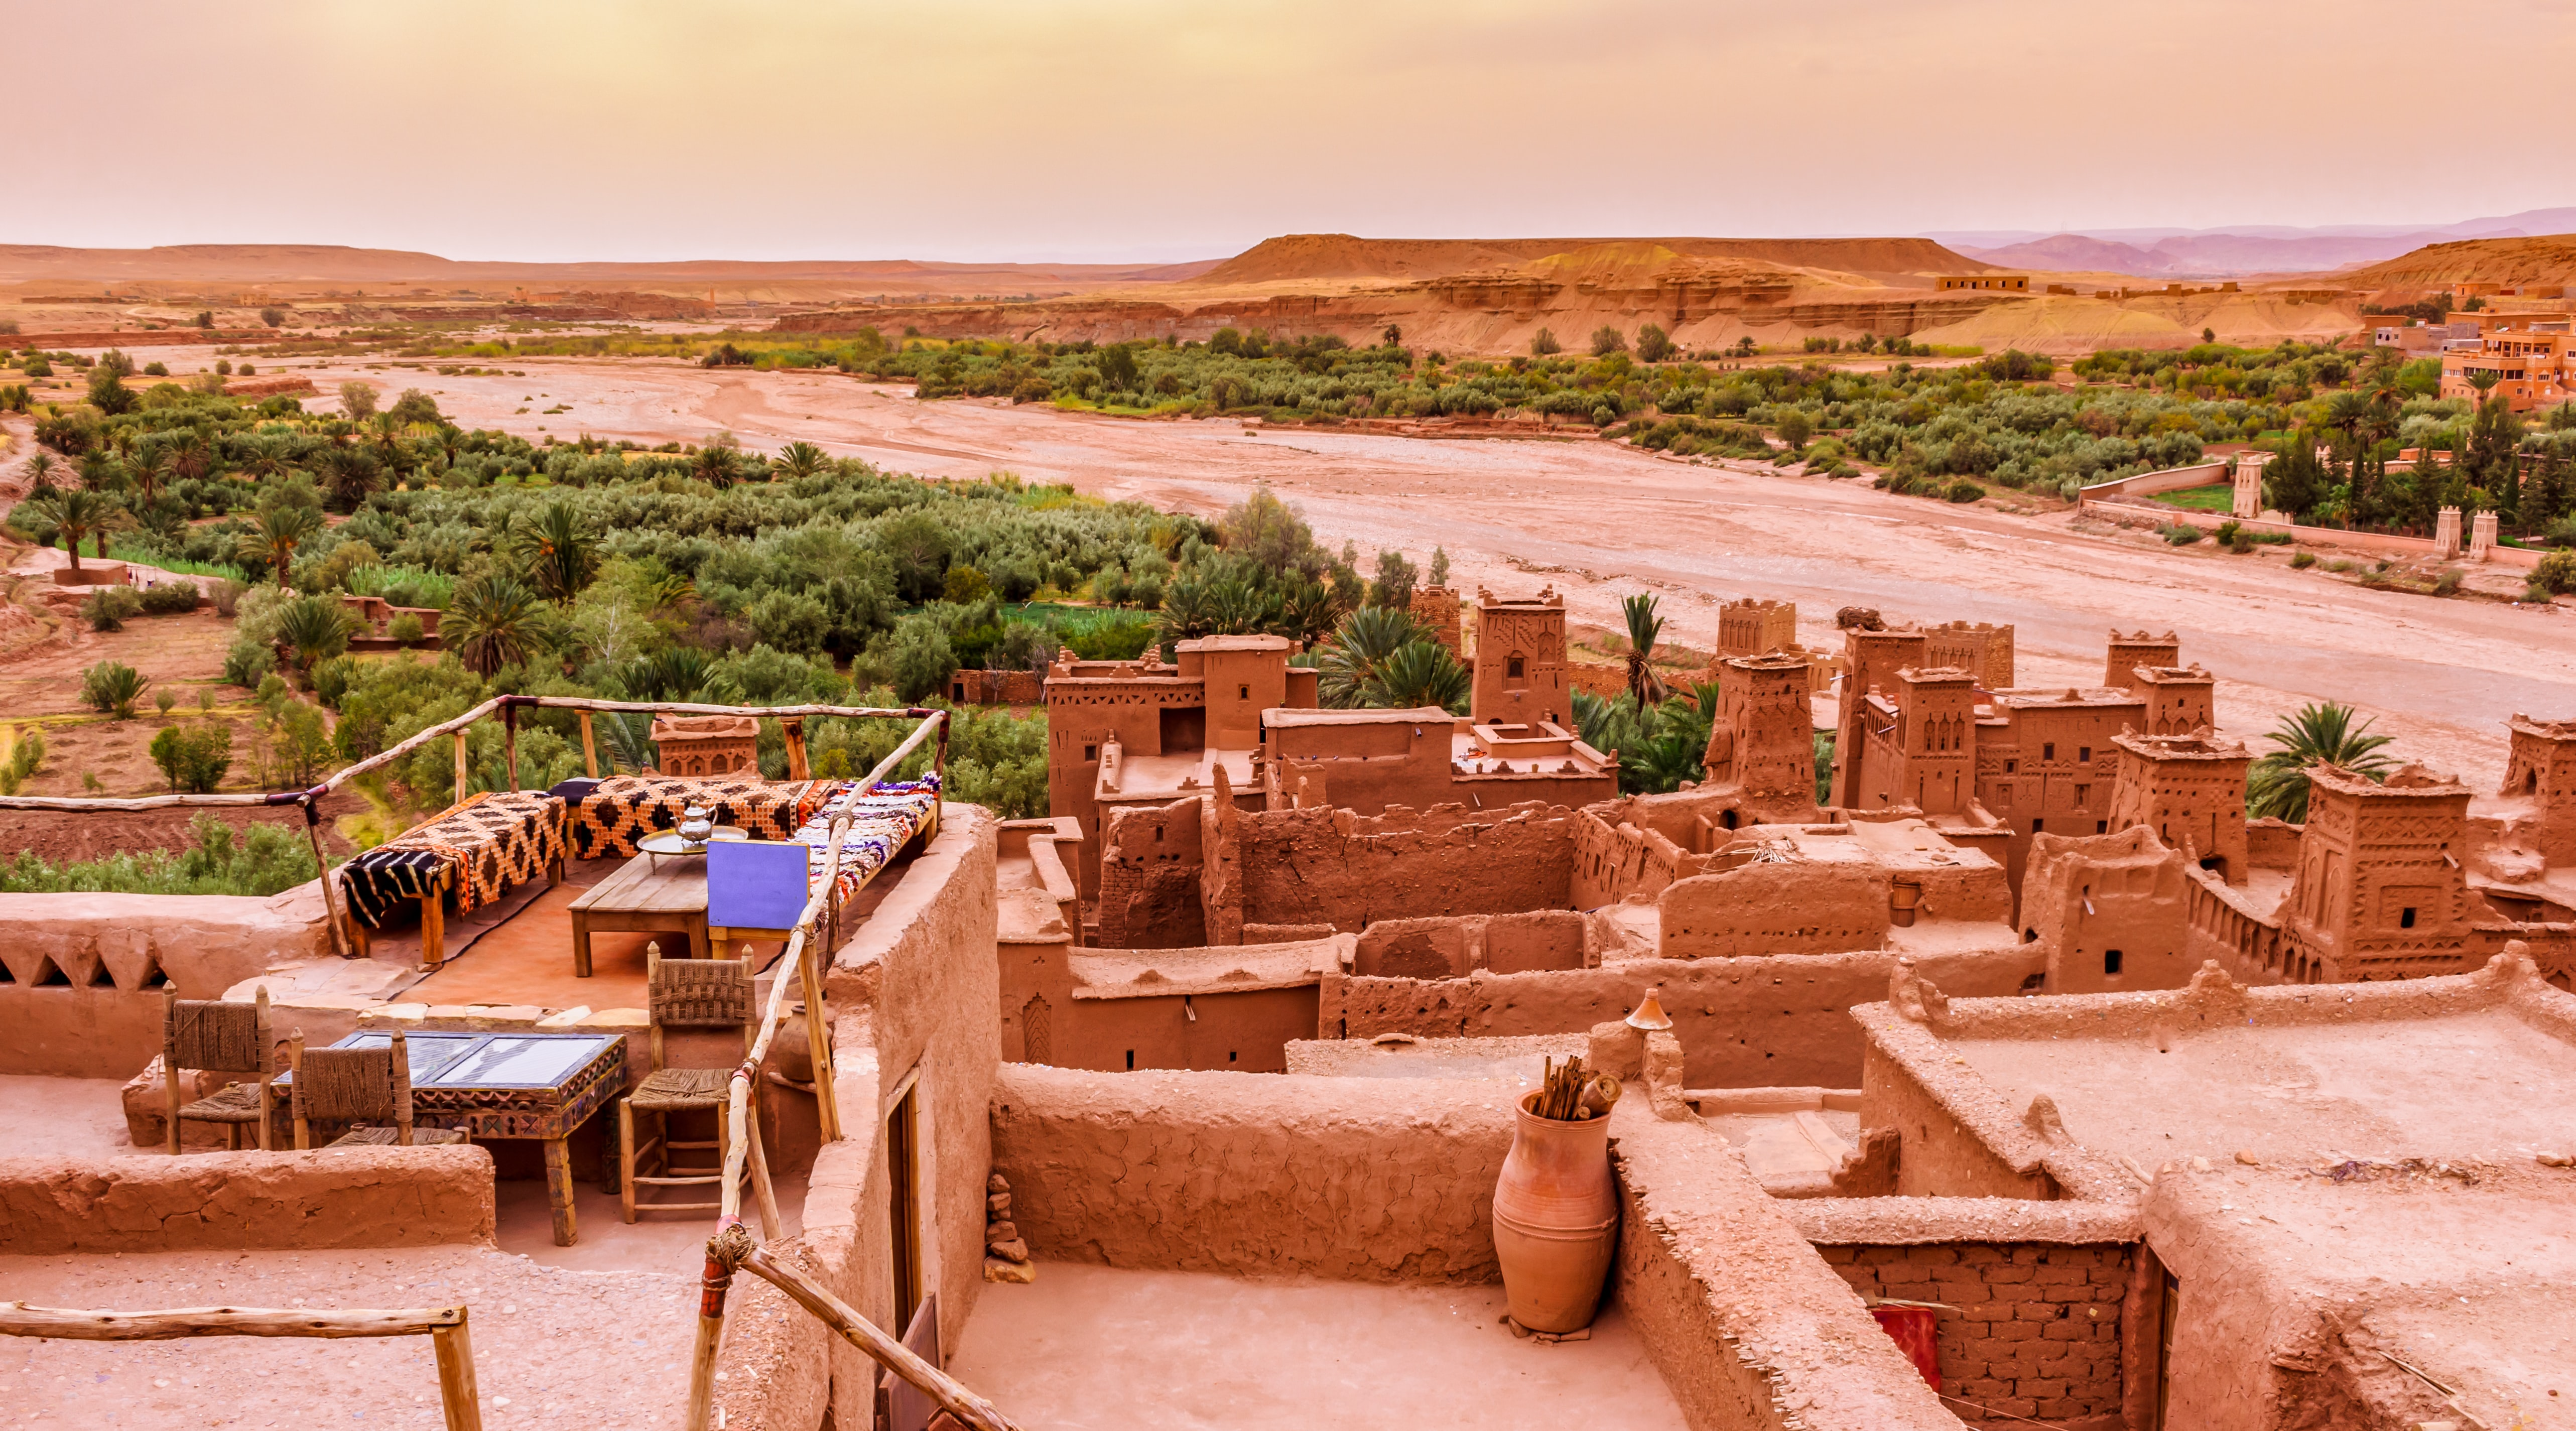 10-Days Morocco Tour from Casablanca Visiting Imperial Cities and Desert 6